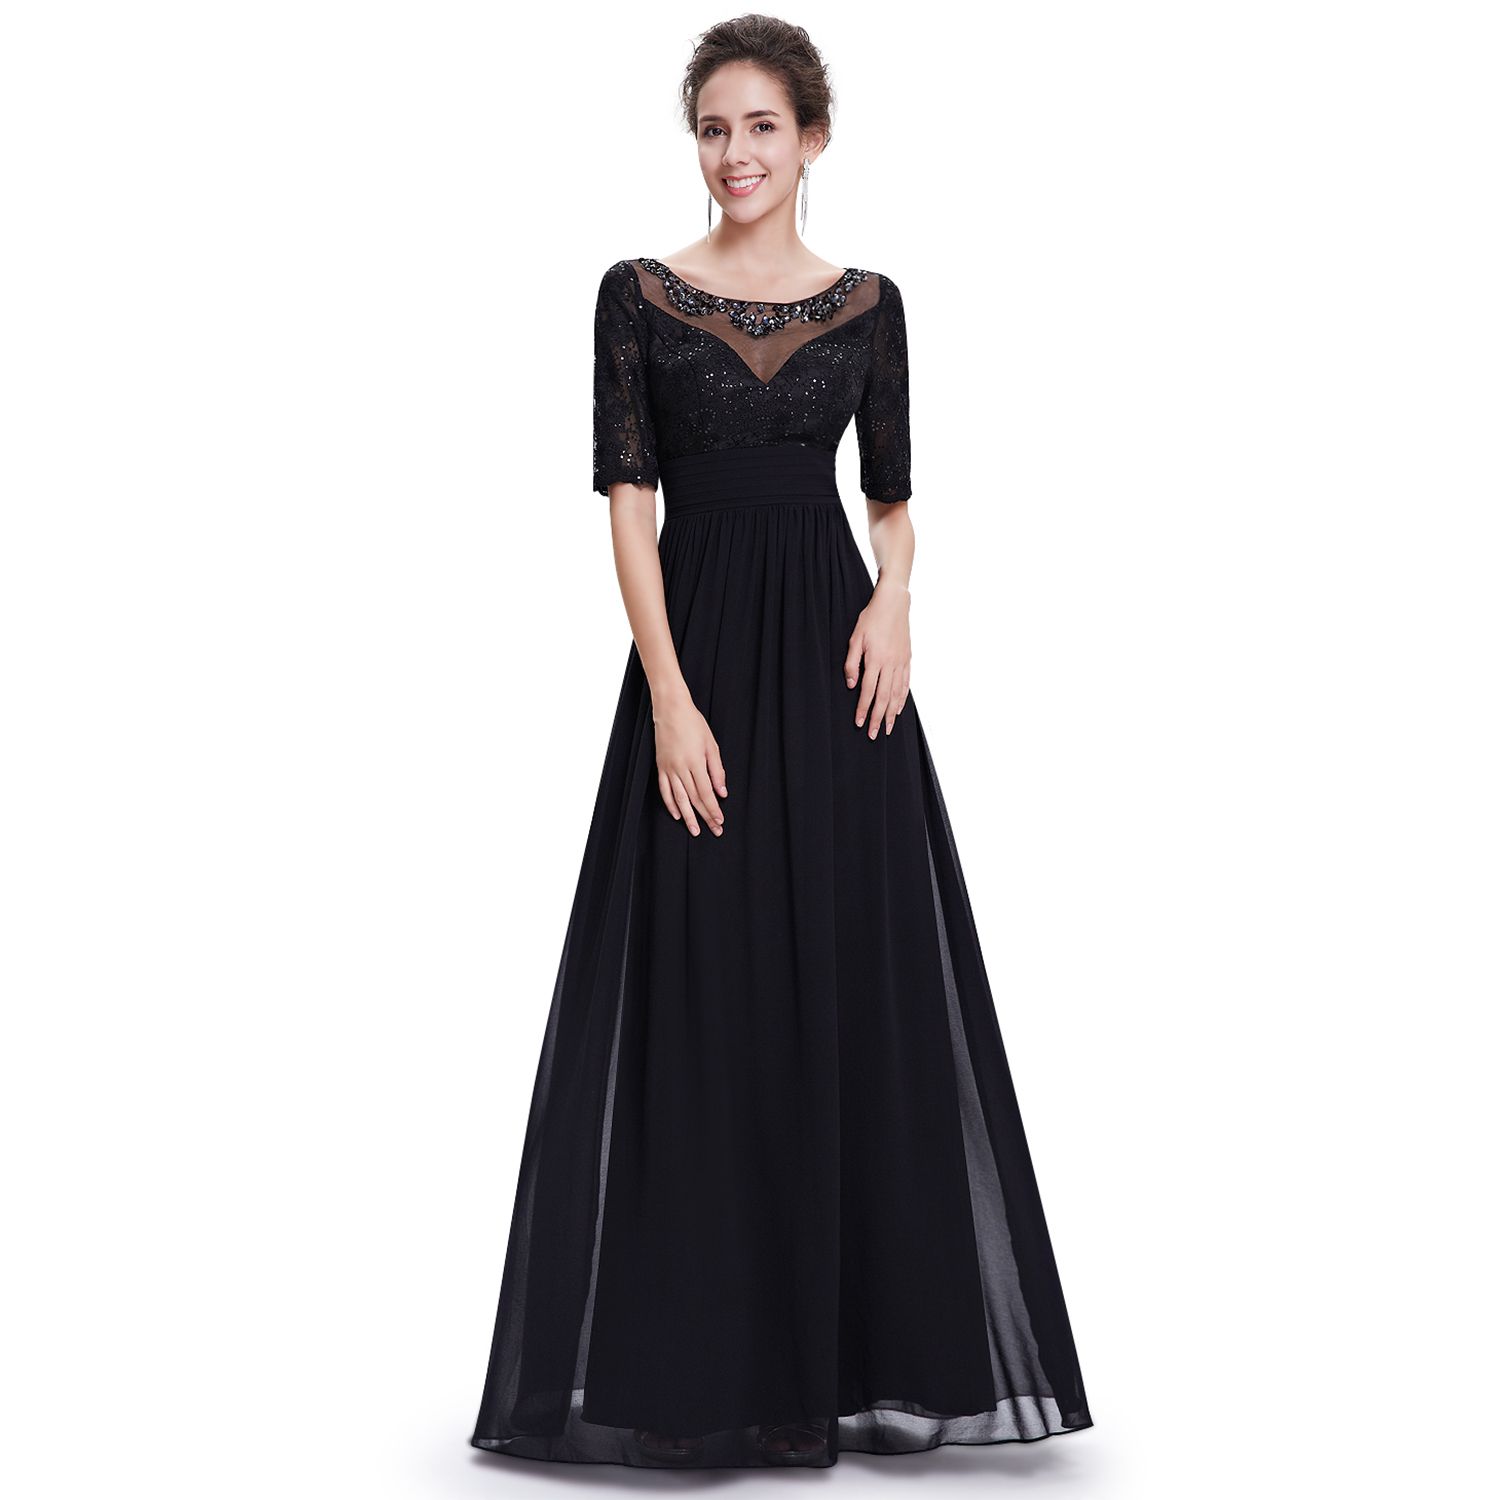 Womens Boat Neck Evening Dresses Black Long Homecoming Gown 08655 ...